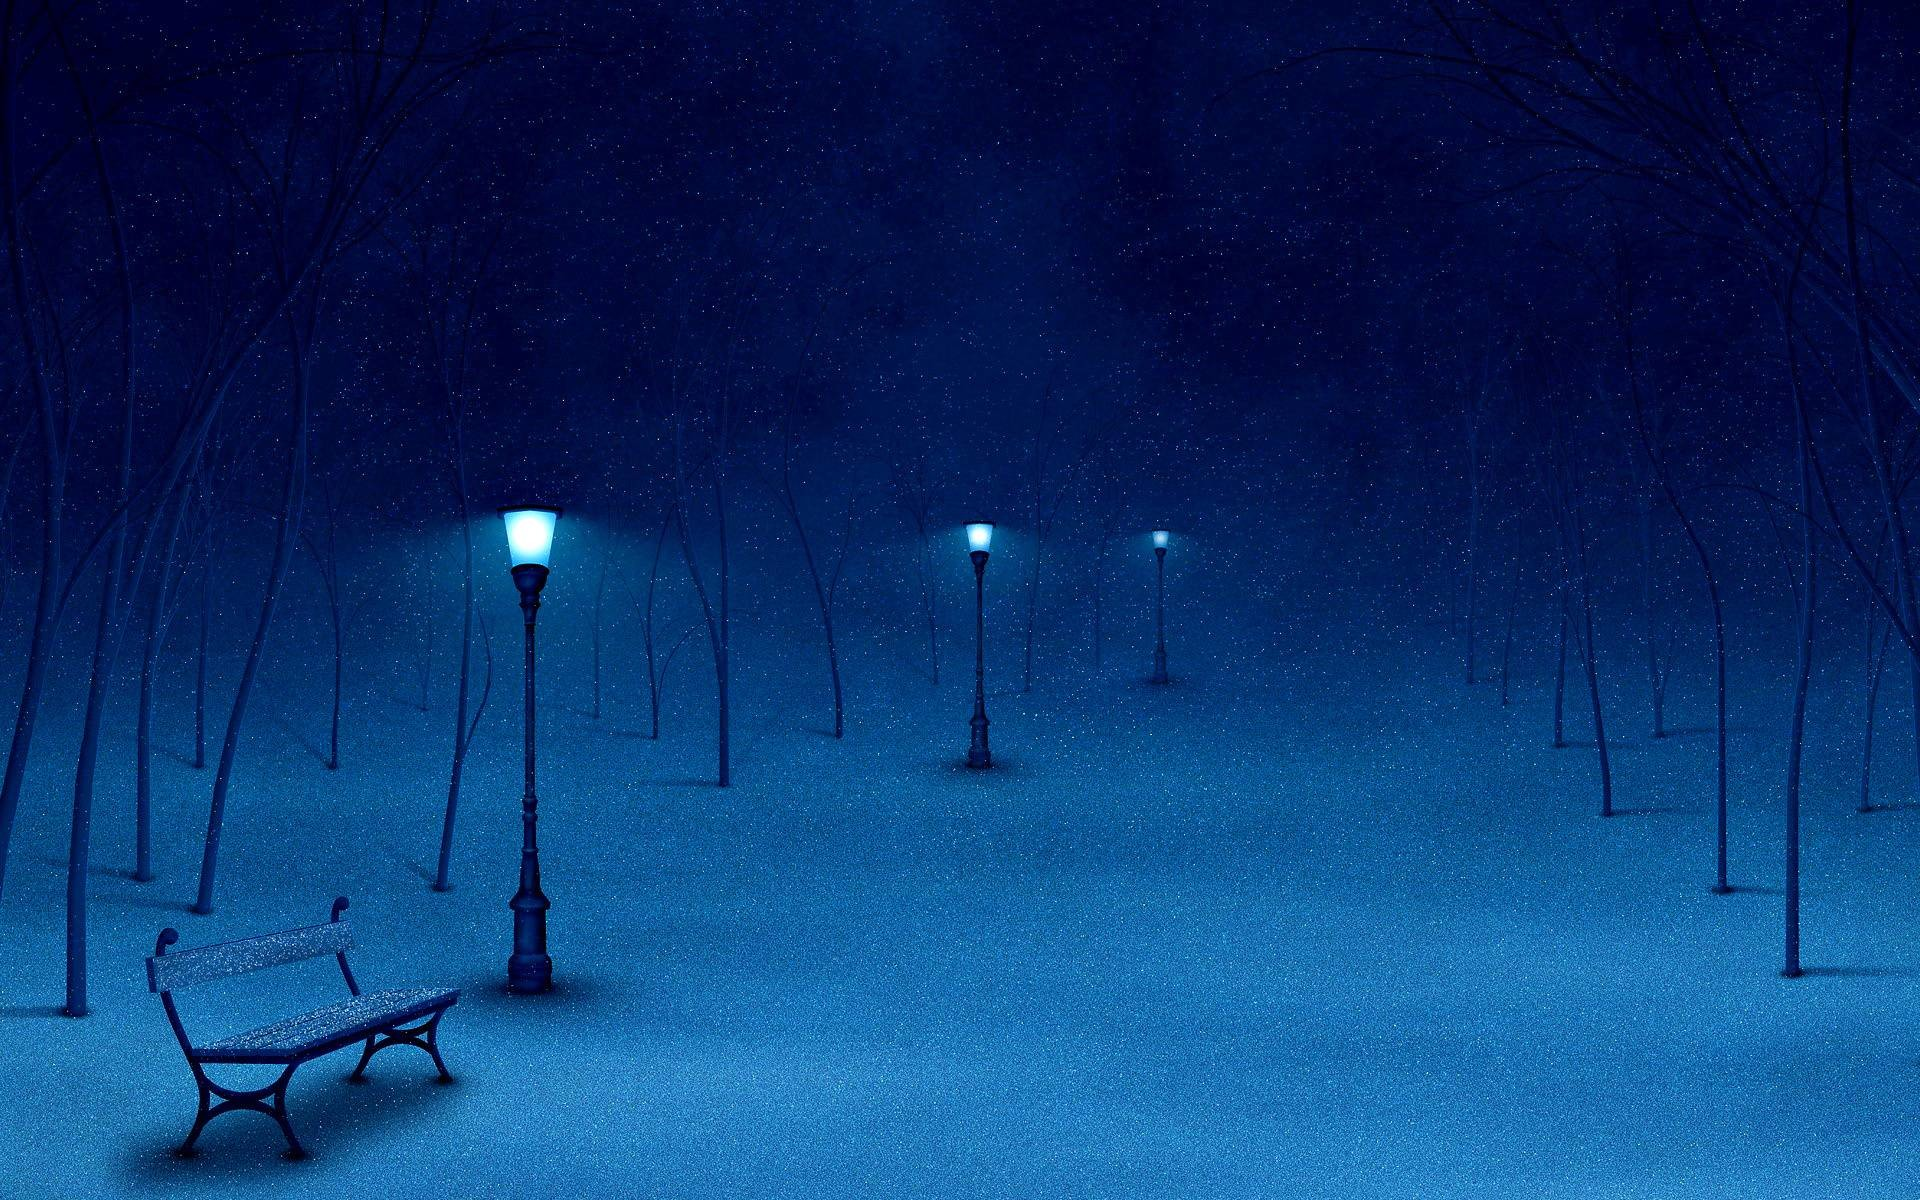 Winter Night Wallpapers HD Nature Wallpaper | HD Wallpapers | Pinterest |  Winter night, Wallpaper and Wallpapers android